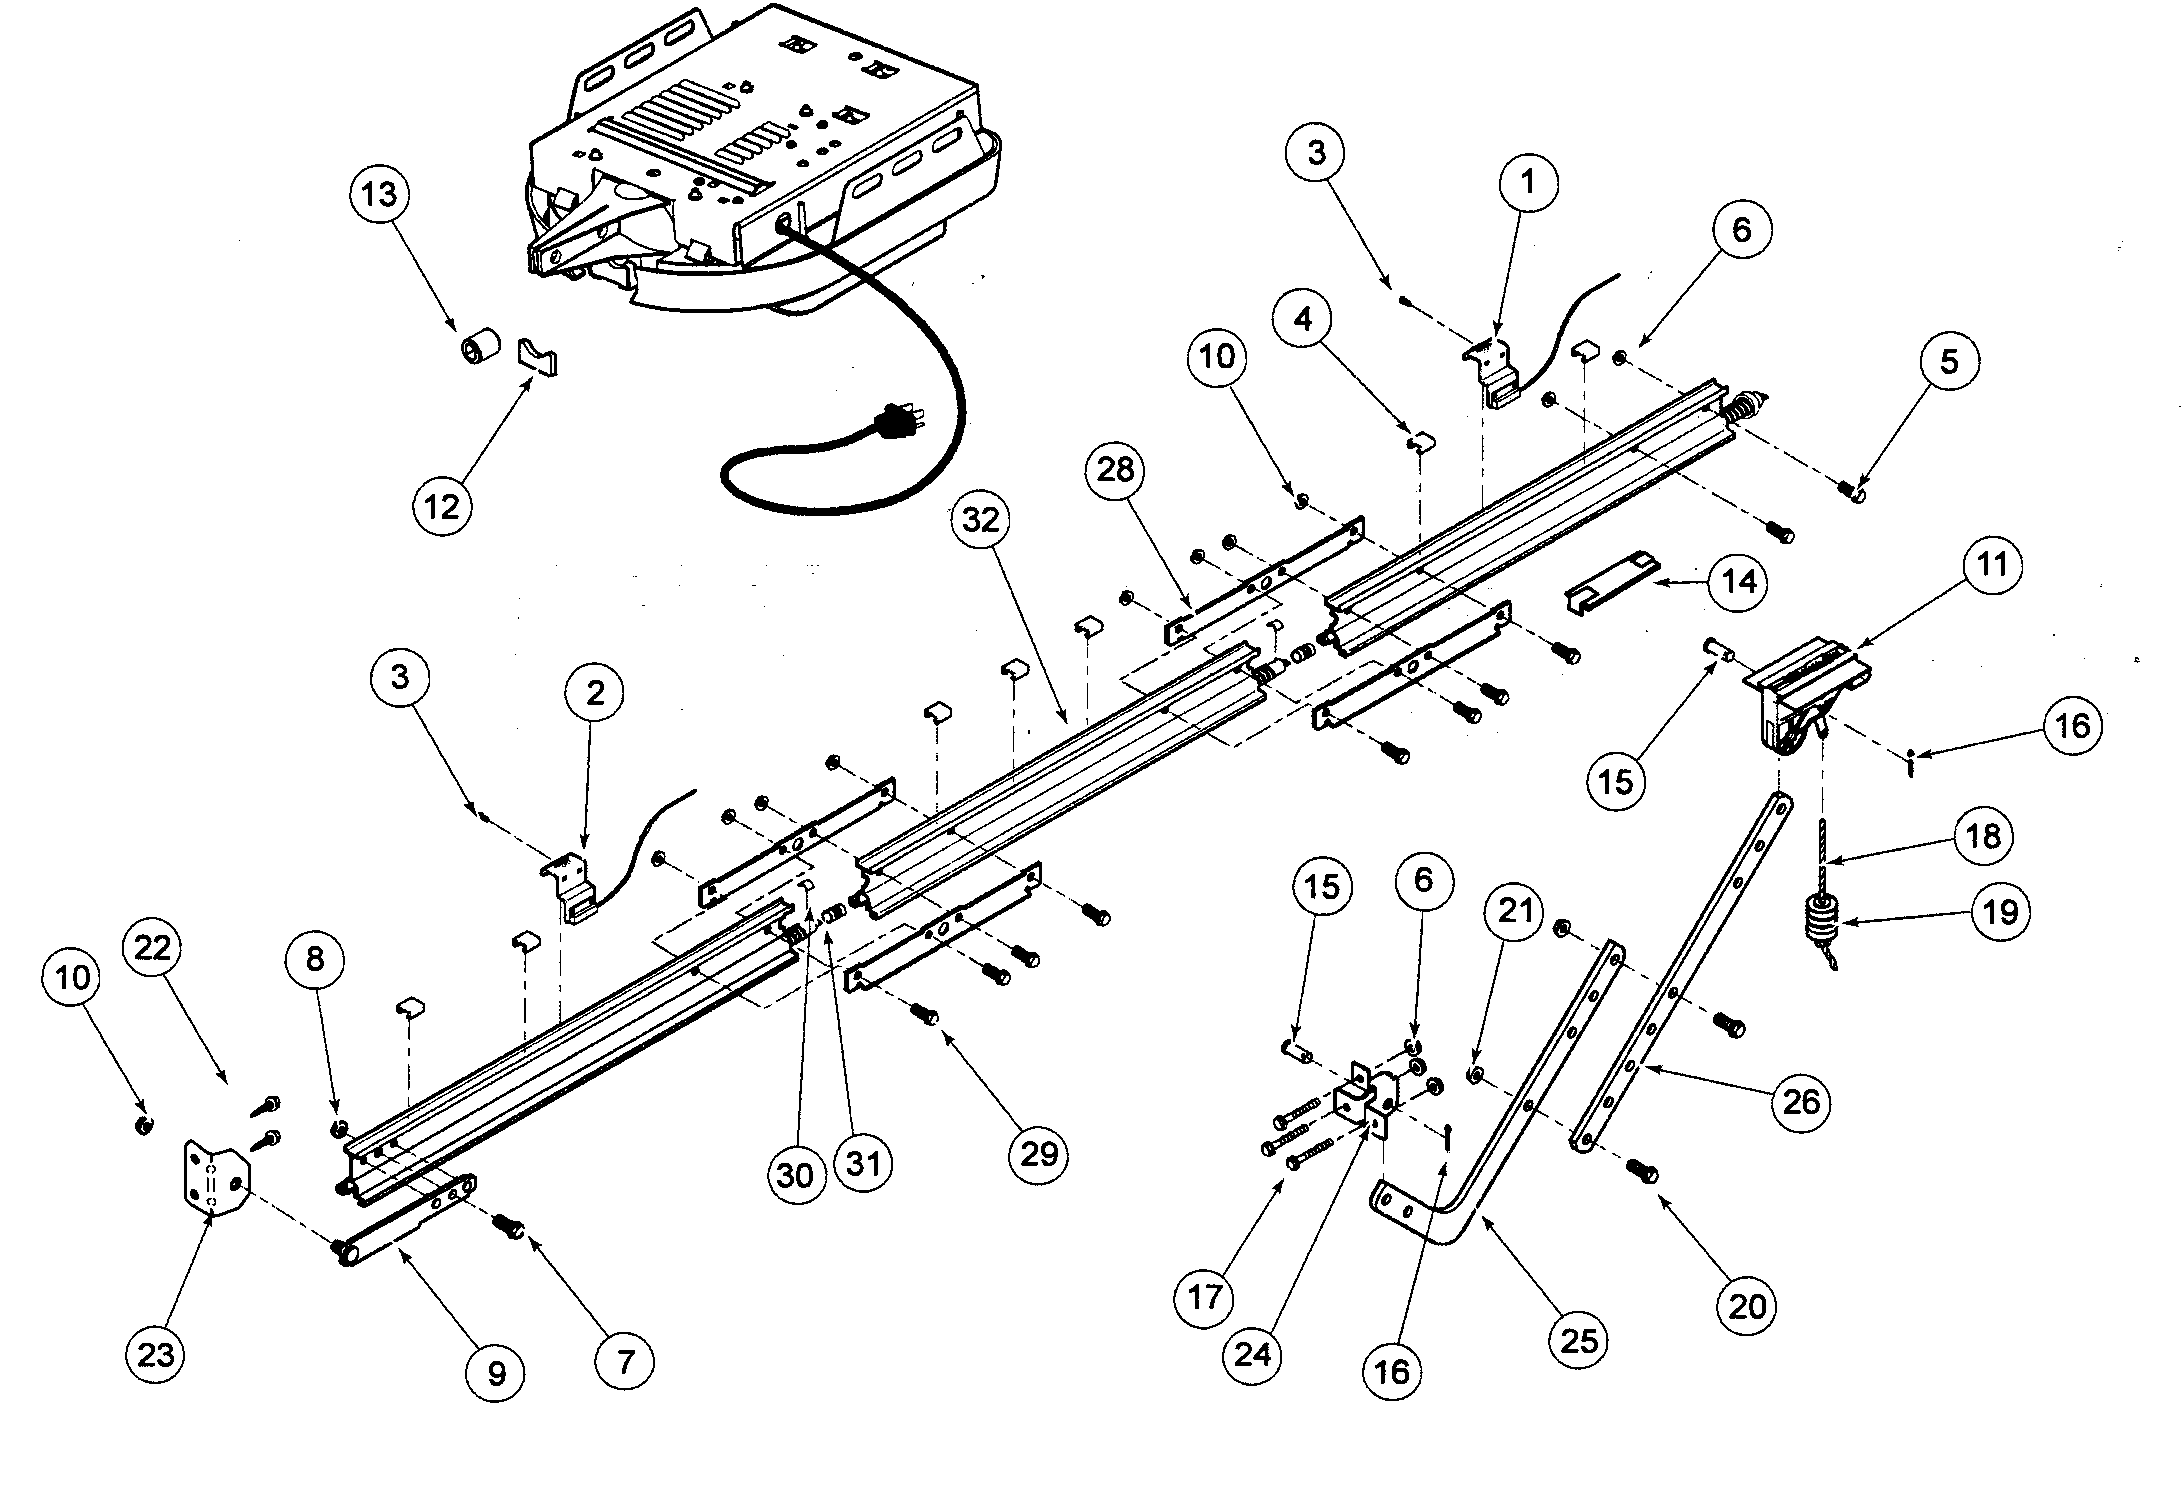 RAIL ASSY Diagram & Parts List for Model isd1000 Genie